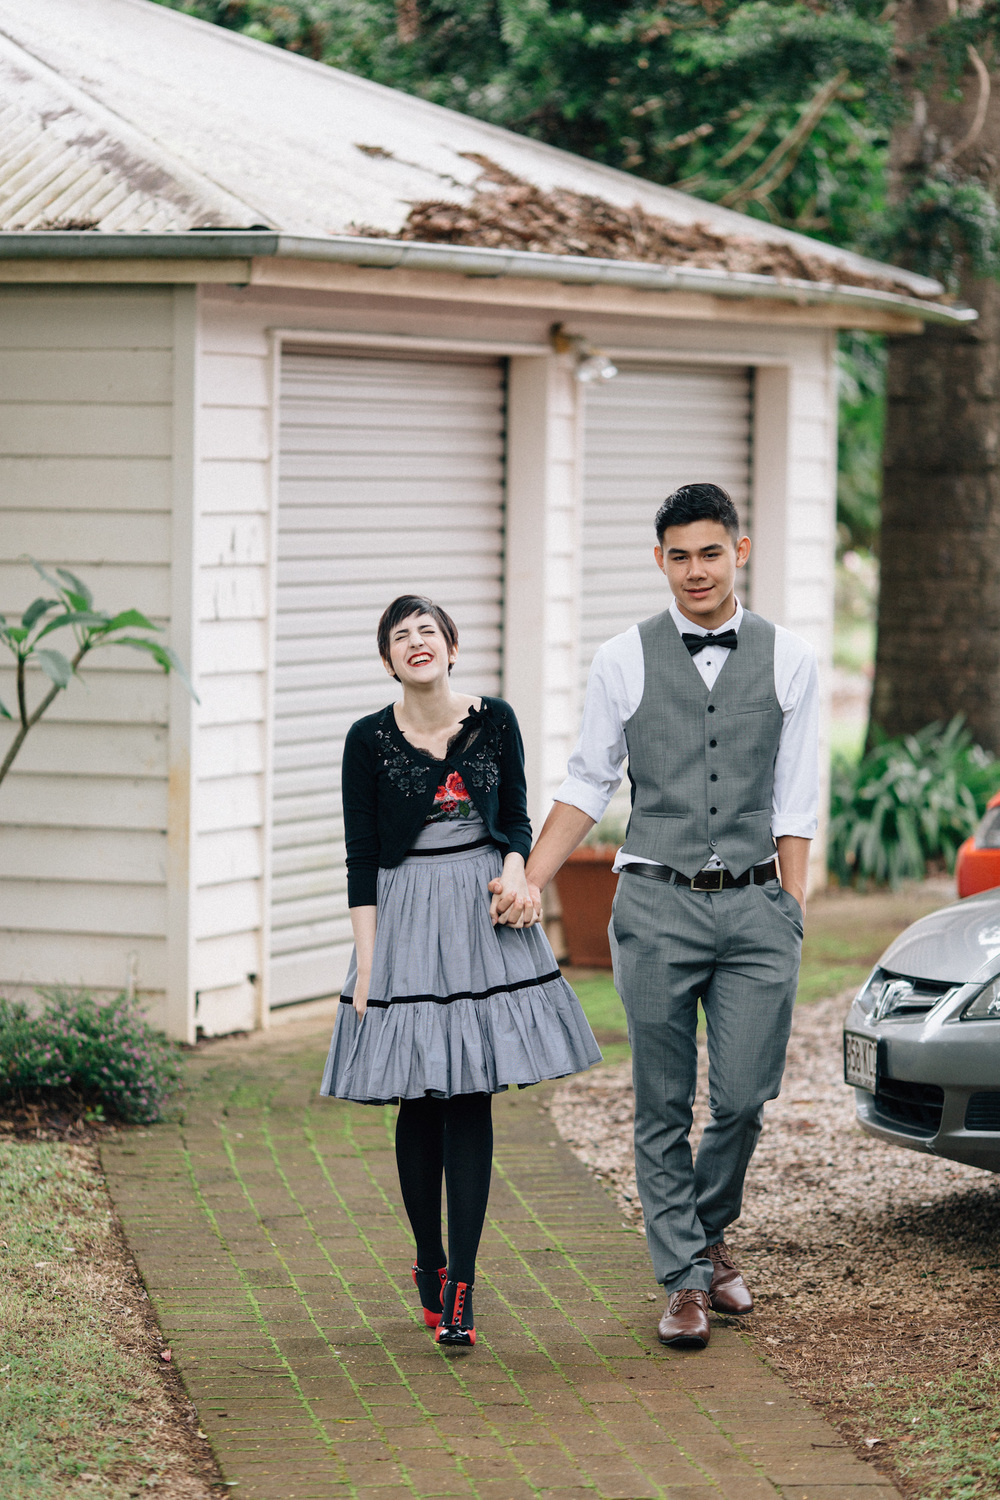 jazzyconnorsphotography_emily&lachlan31.jpg